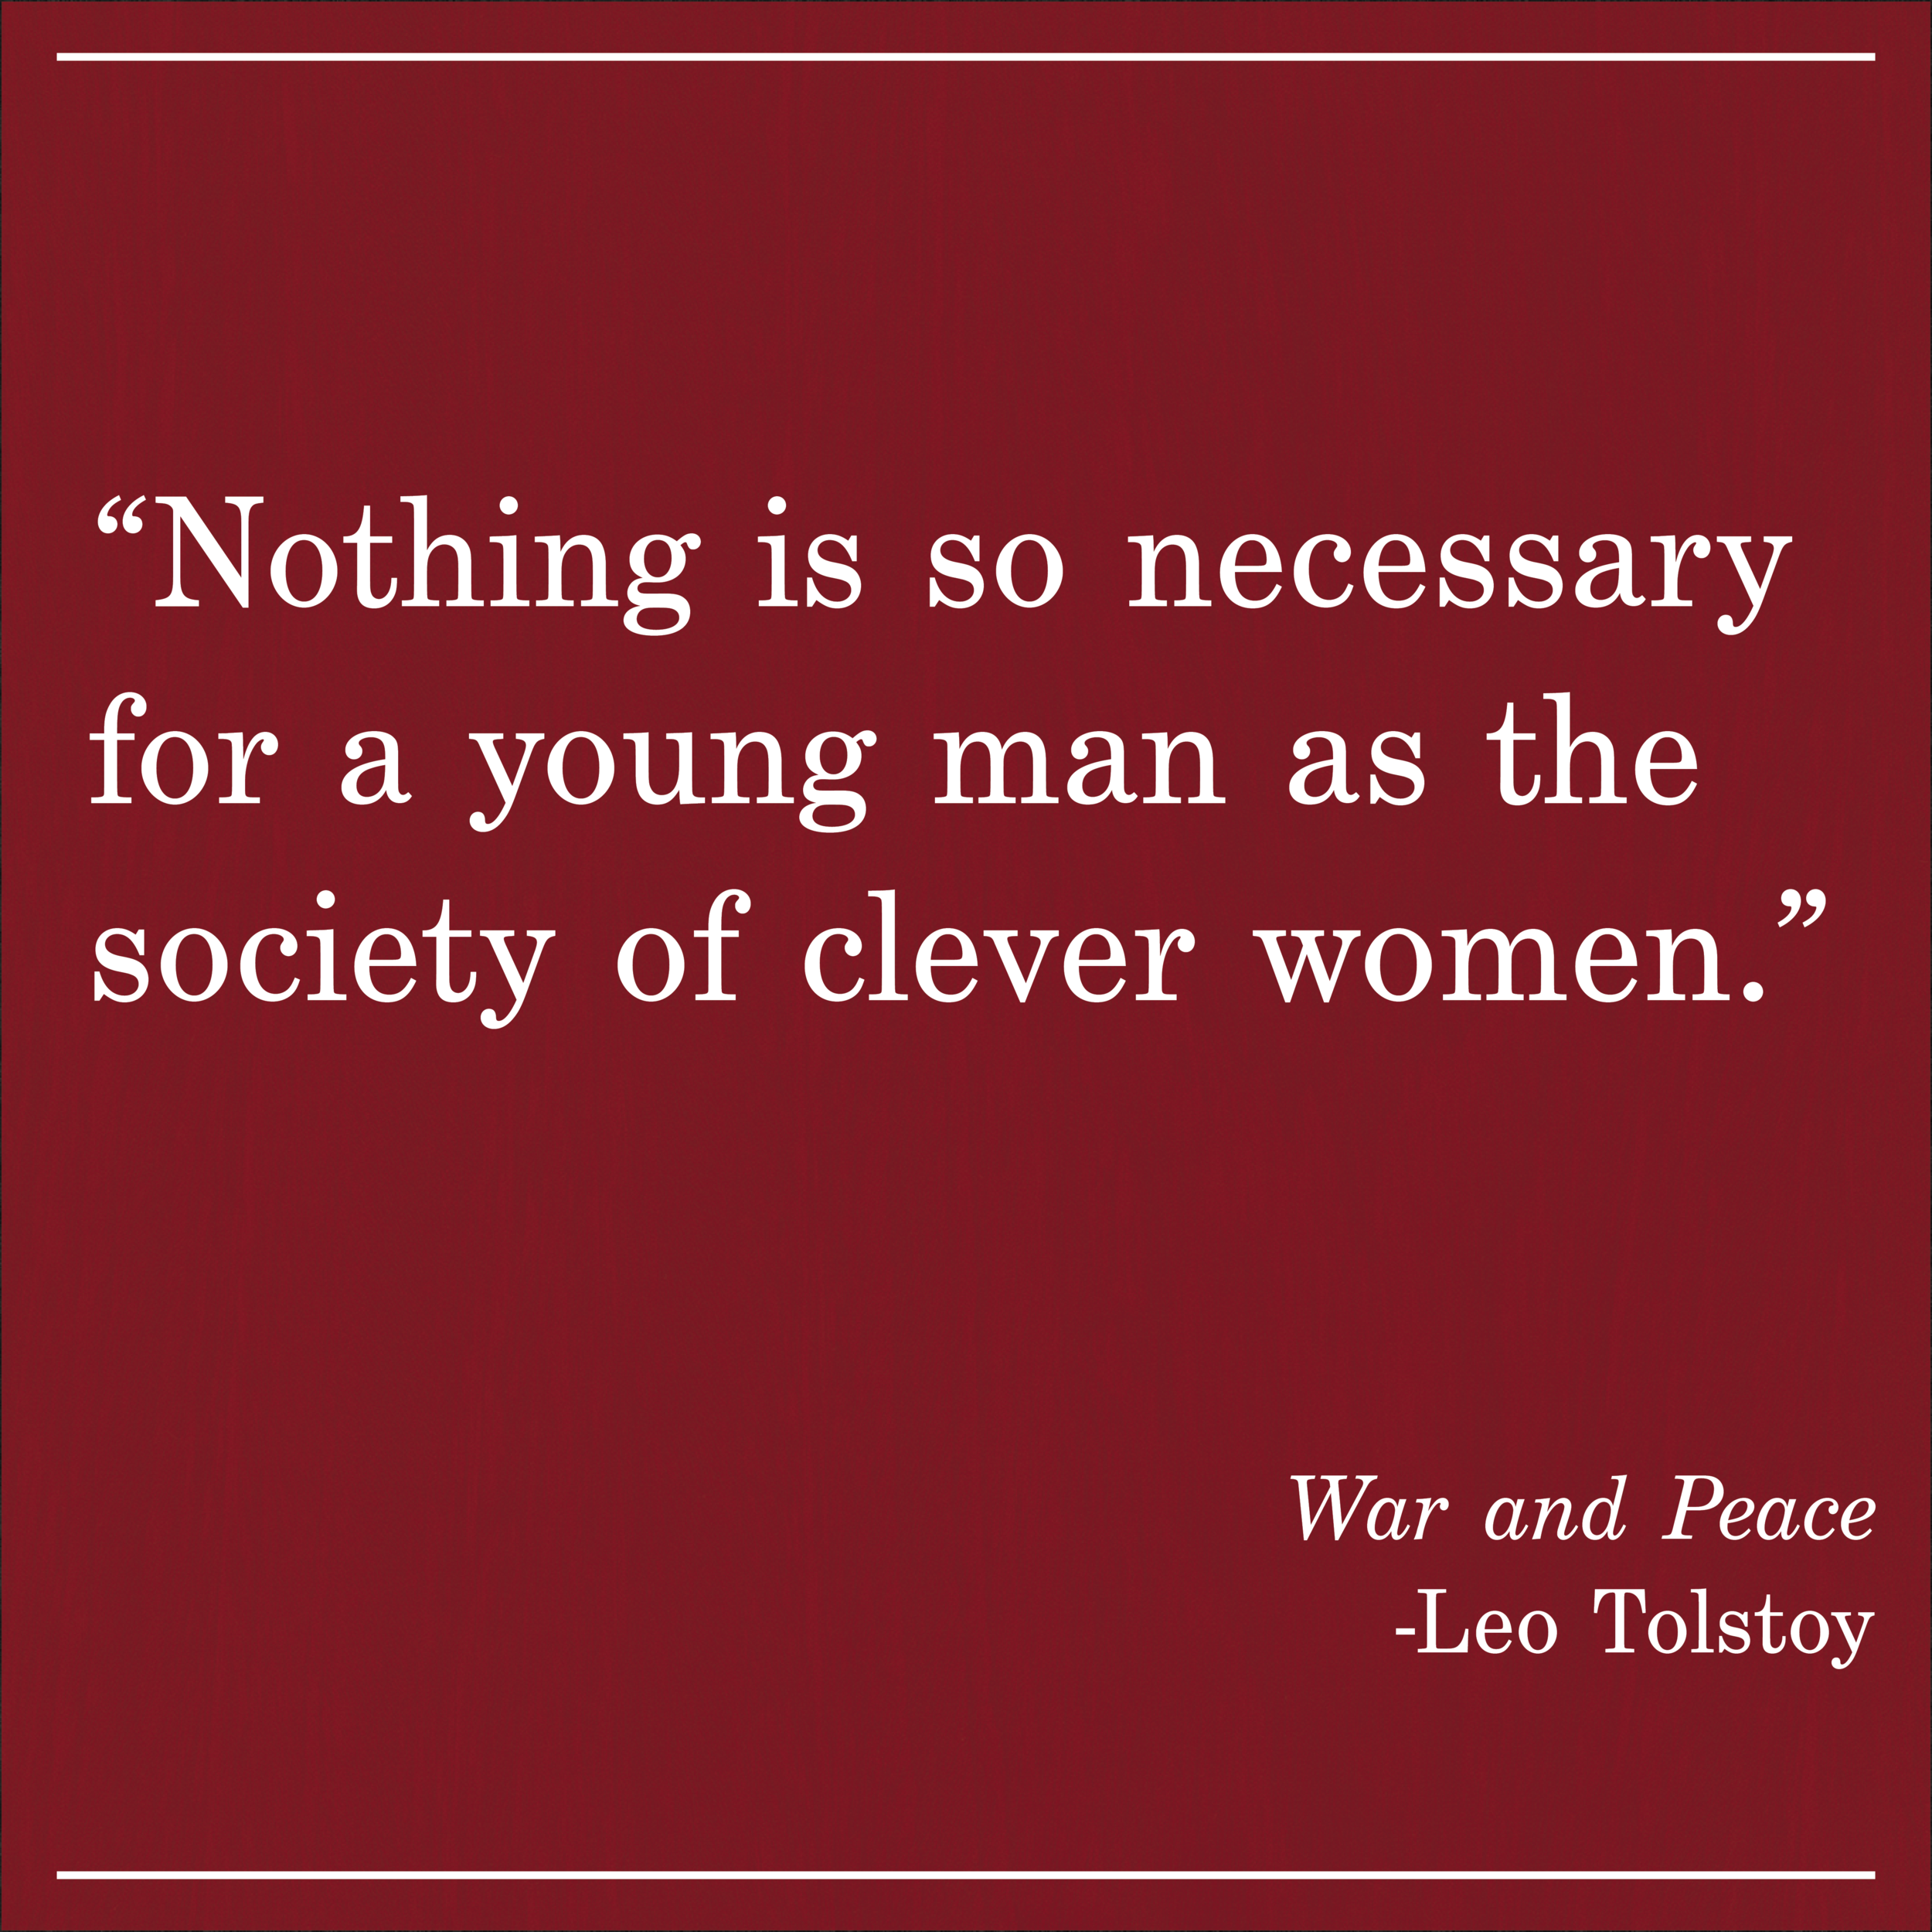 Daily Quote War and Peace Leo Tolstoy